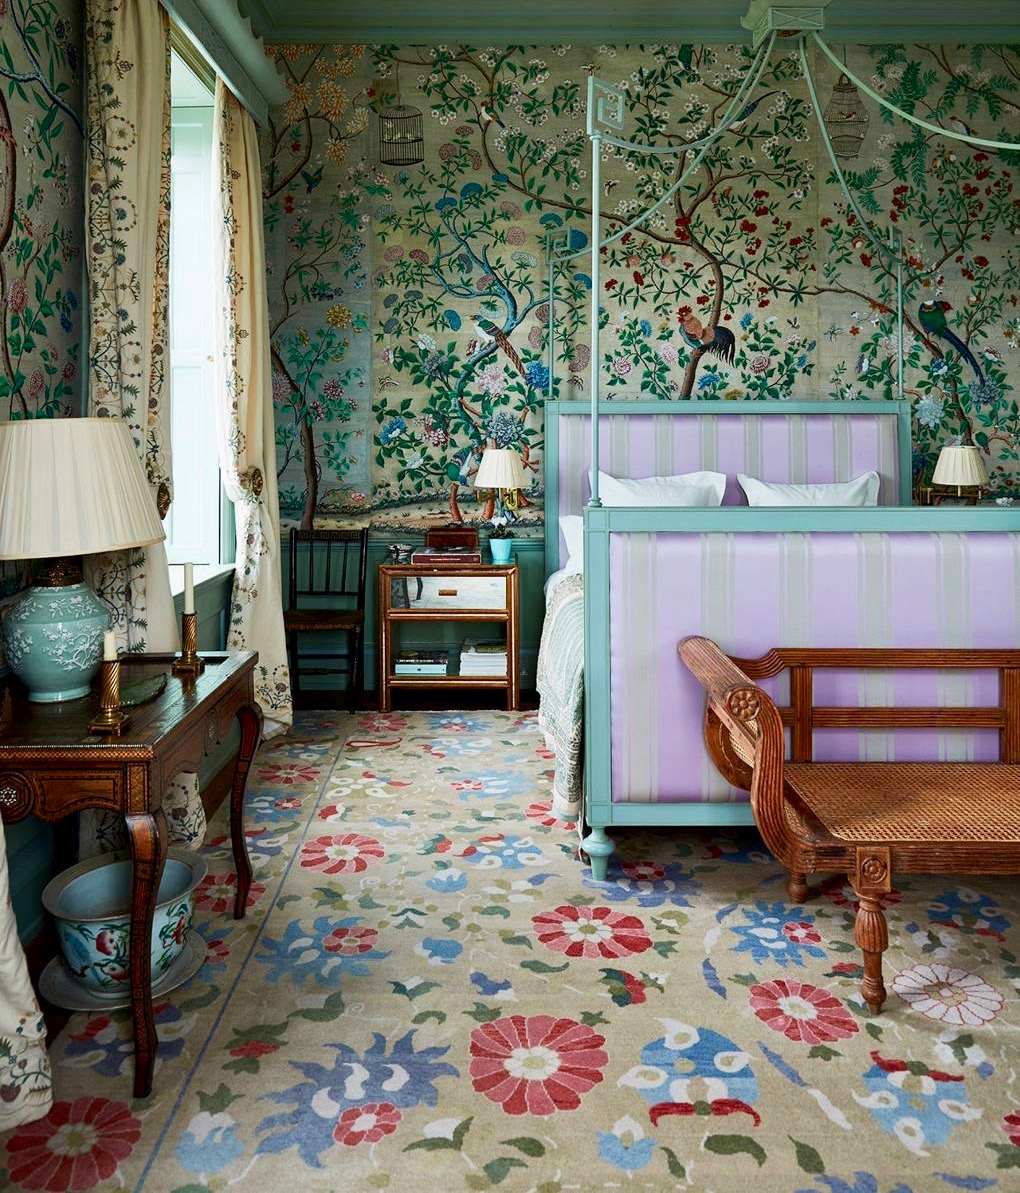 English Country House Bedroom with Chinoiserie Wallpaper and a Canopy Bed